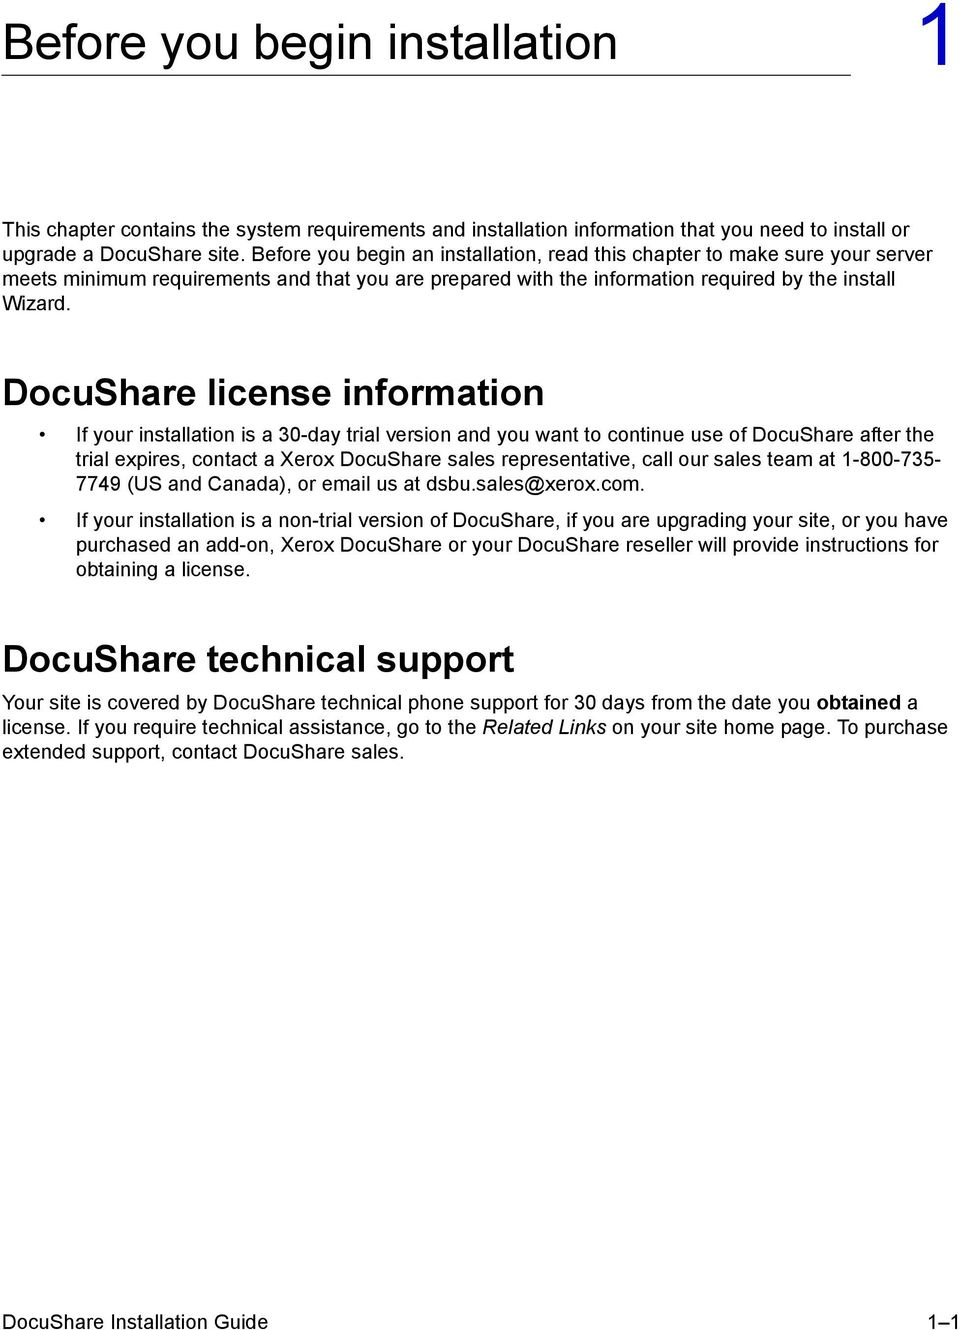 DocuShare license information If your installation is a 30-day trial version and you want to continue use of DocuShare after the trial expires, contact a Xerox DocuShare sales representative, call